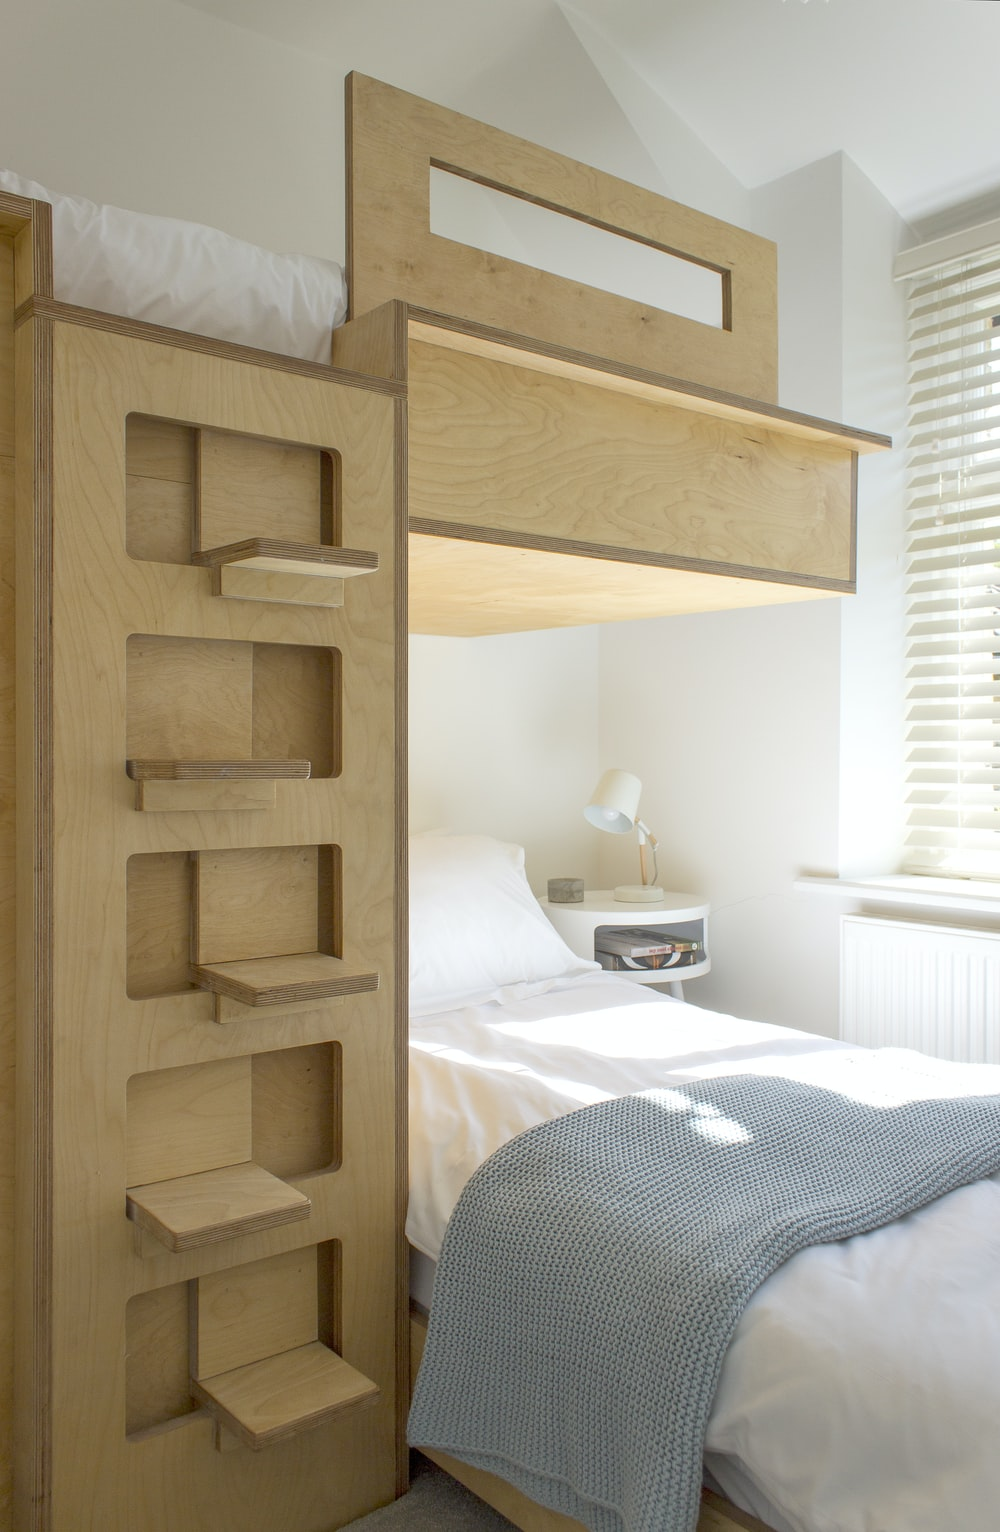 white bed linen near brown wooden bed frame